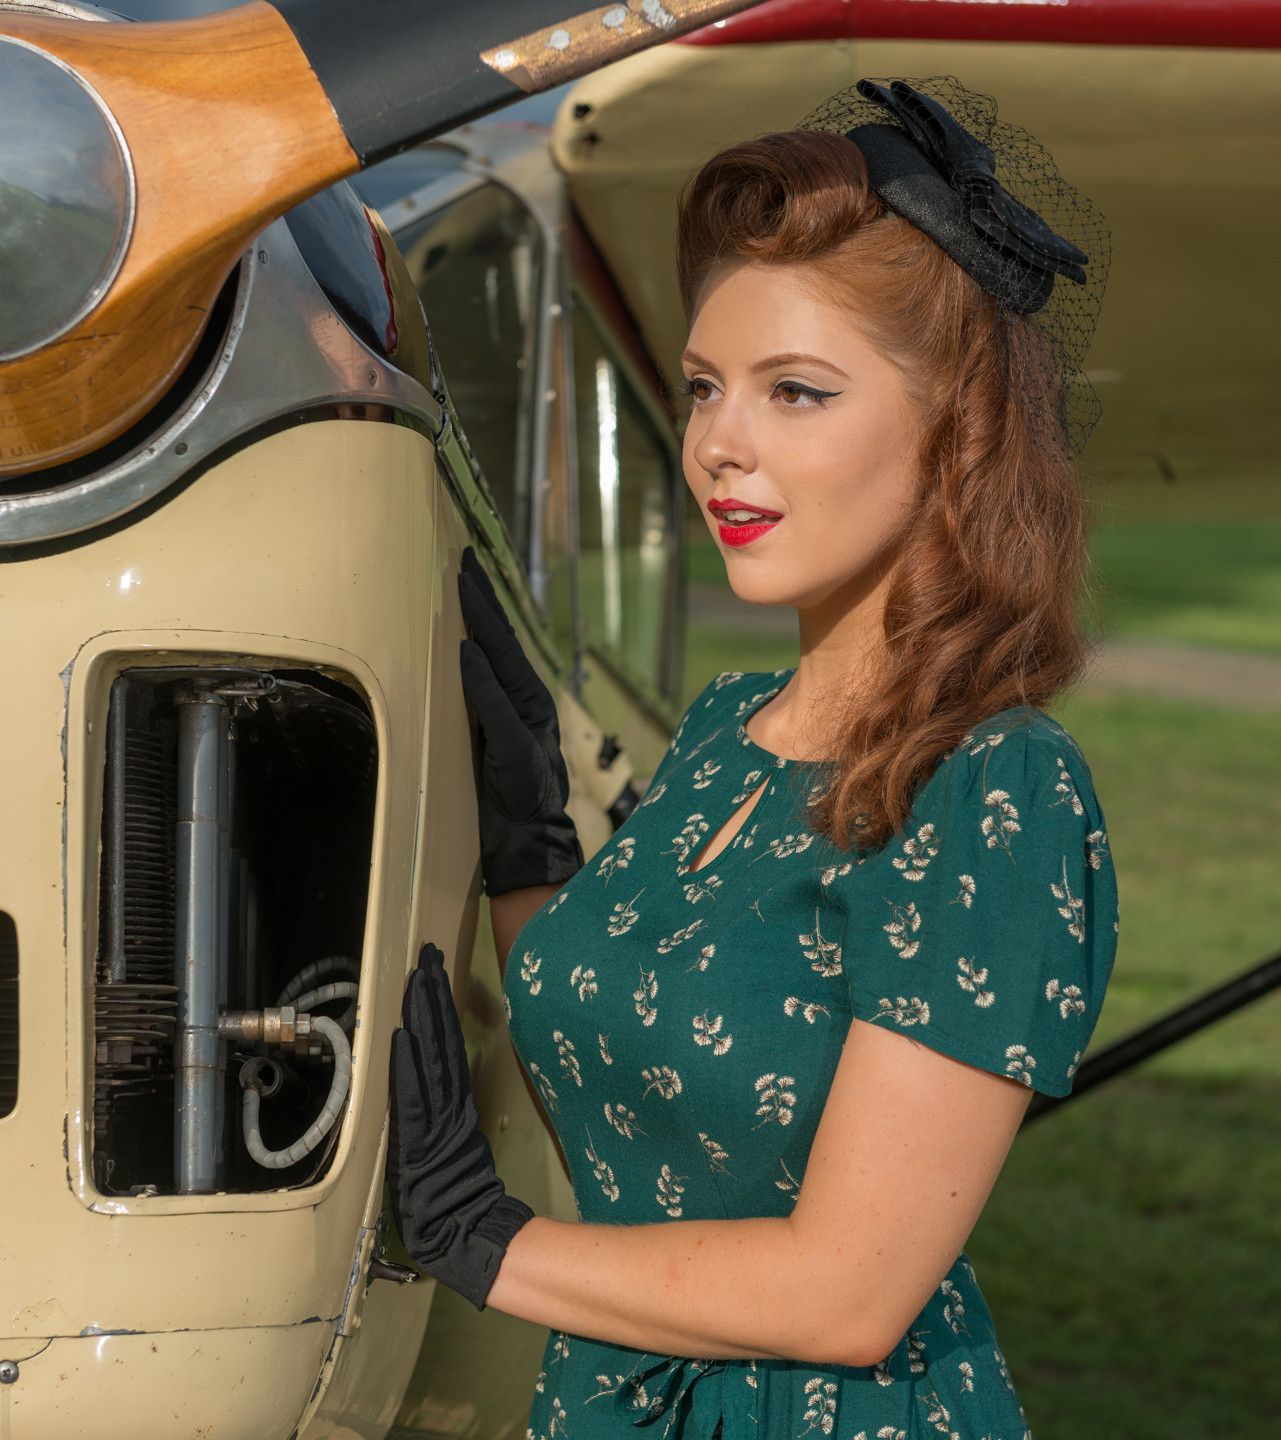 Miss Kelly - The Flying Pinup (Headshot) - Photographer Mark Greenmantle